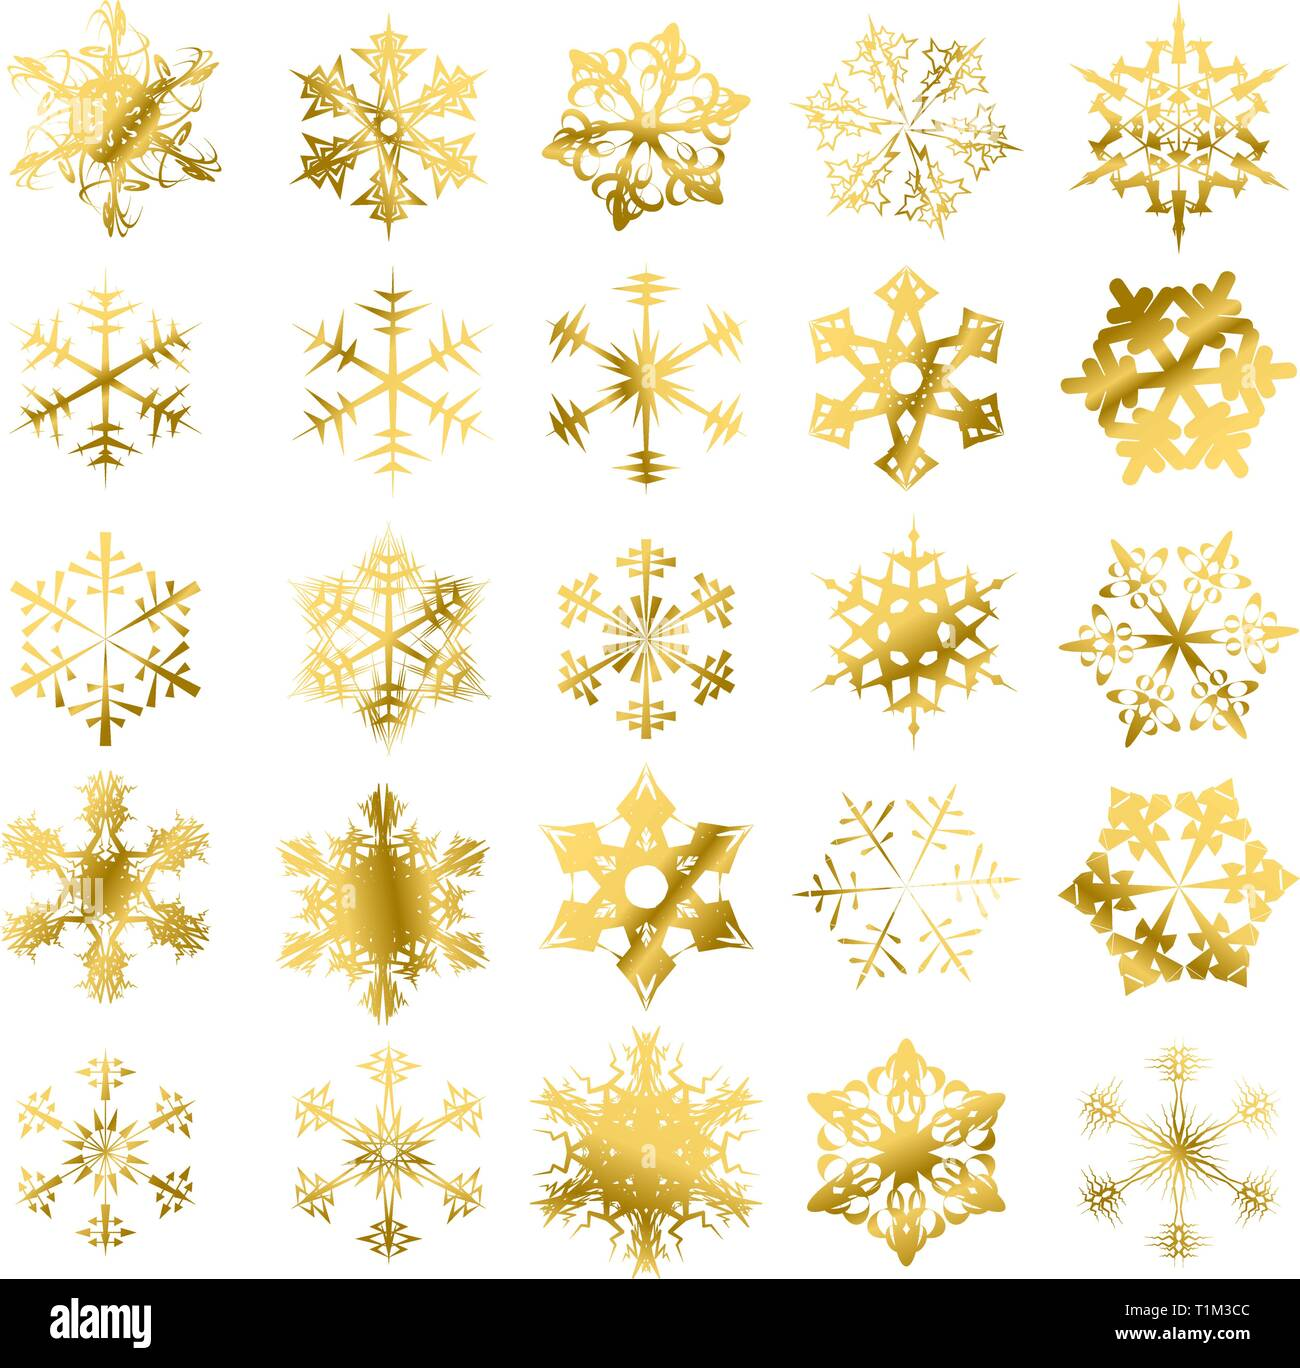 Golden snowflakes isolated on a white background - Stock Vector